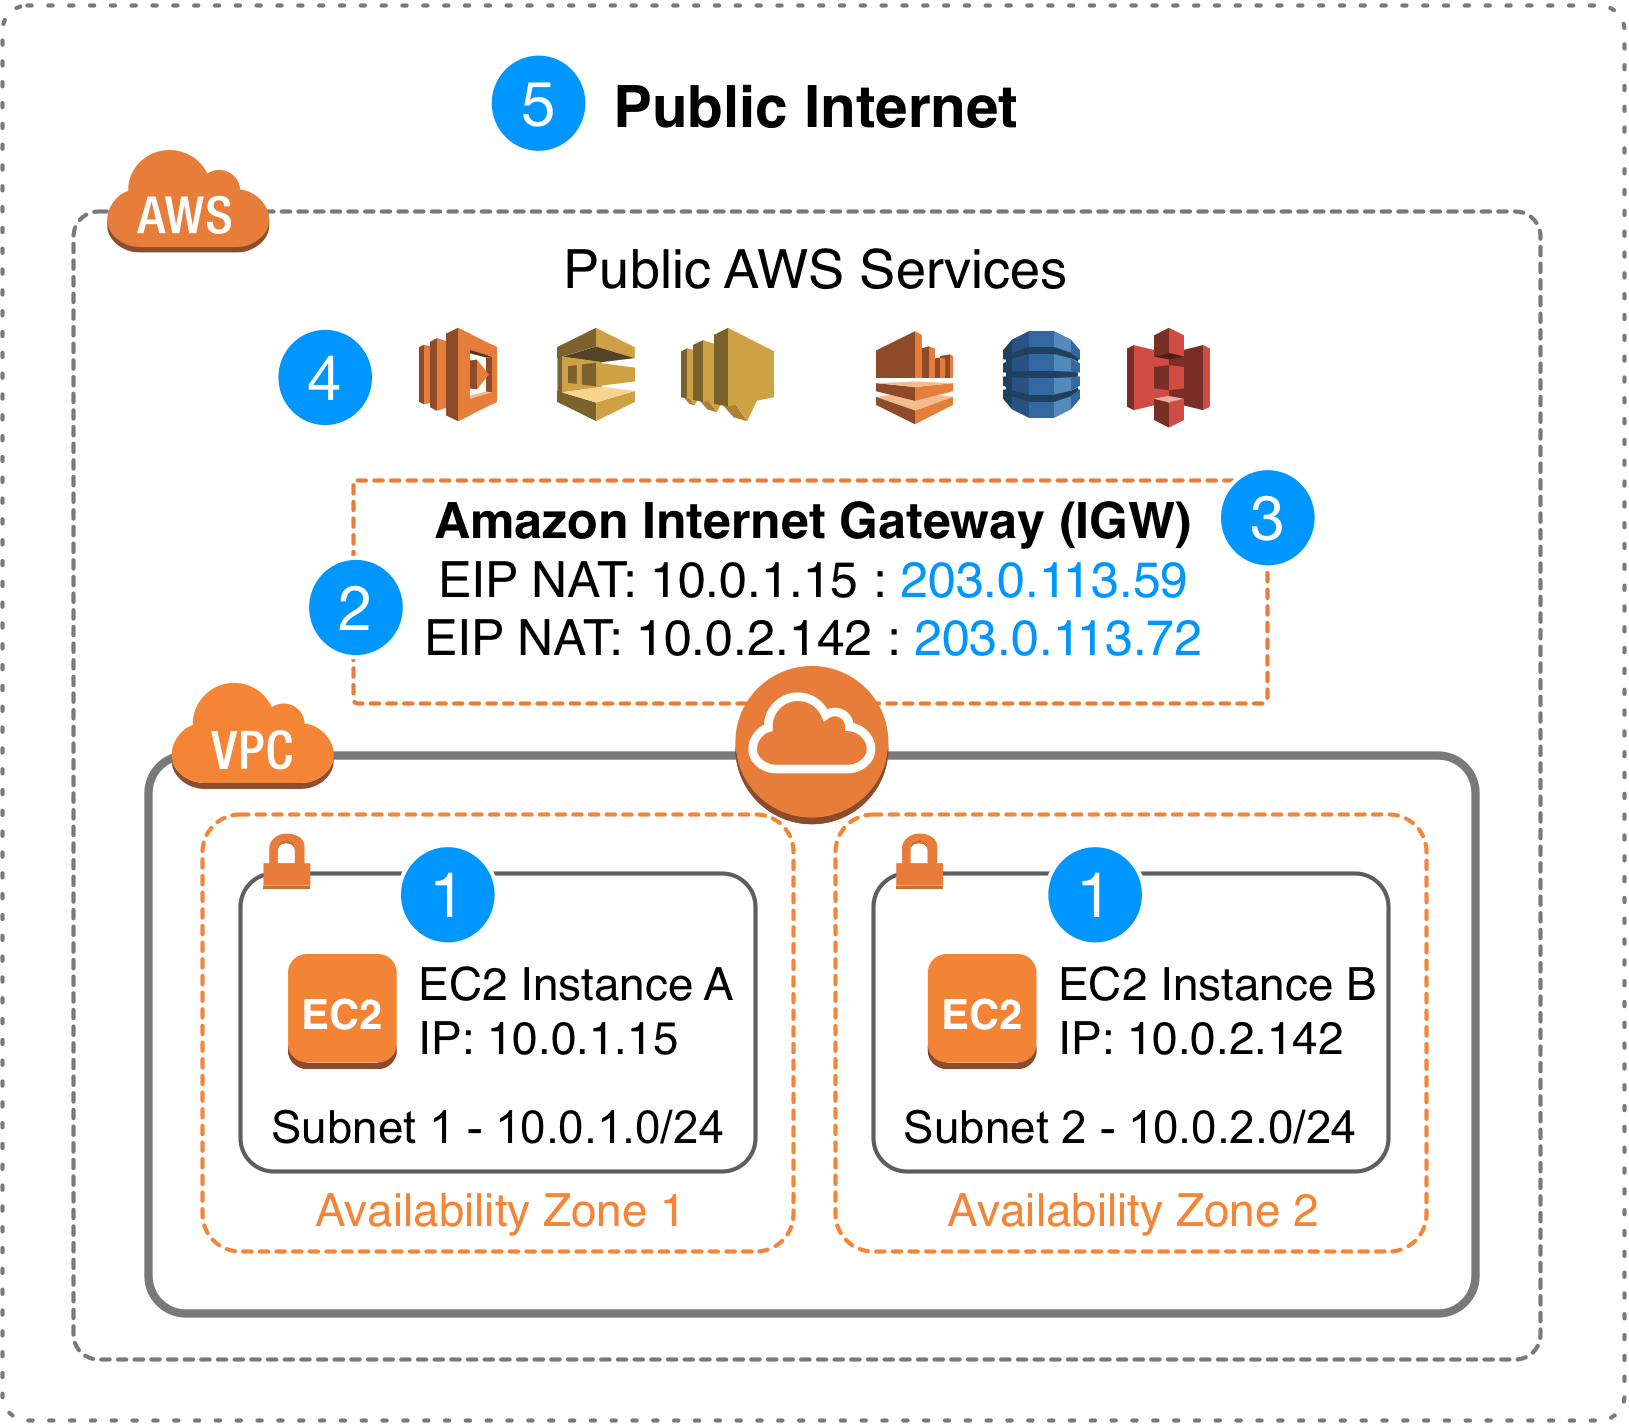 Introducing Bring Your Own IP (BYOIP) for Amazon VPC